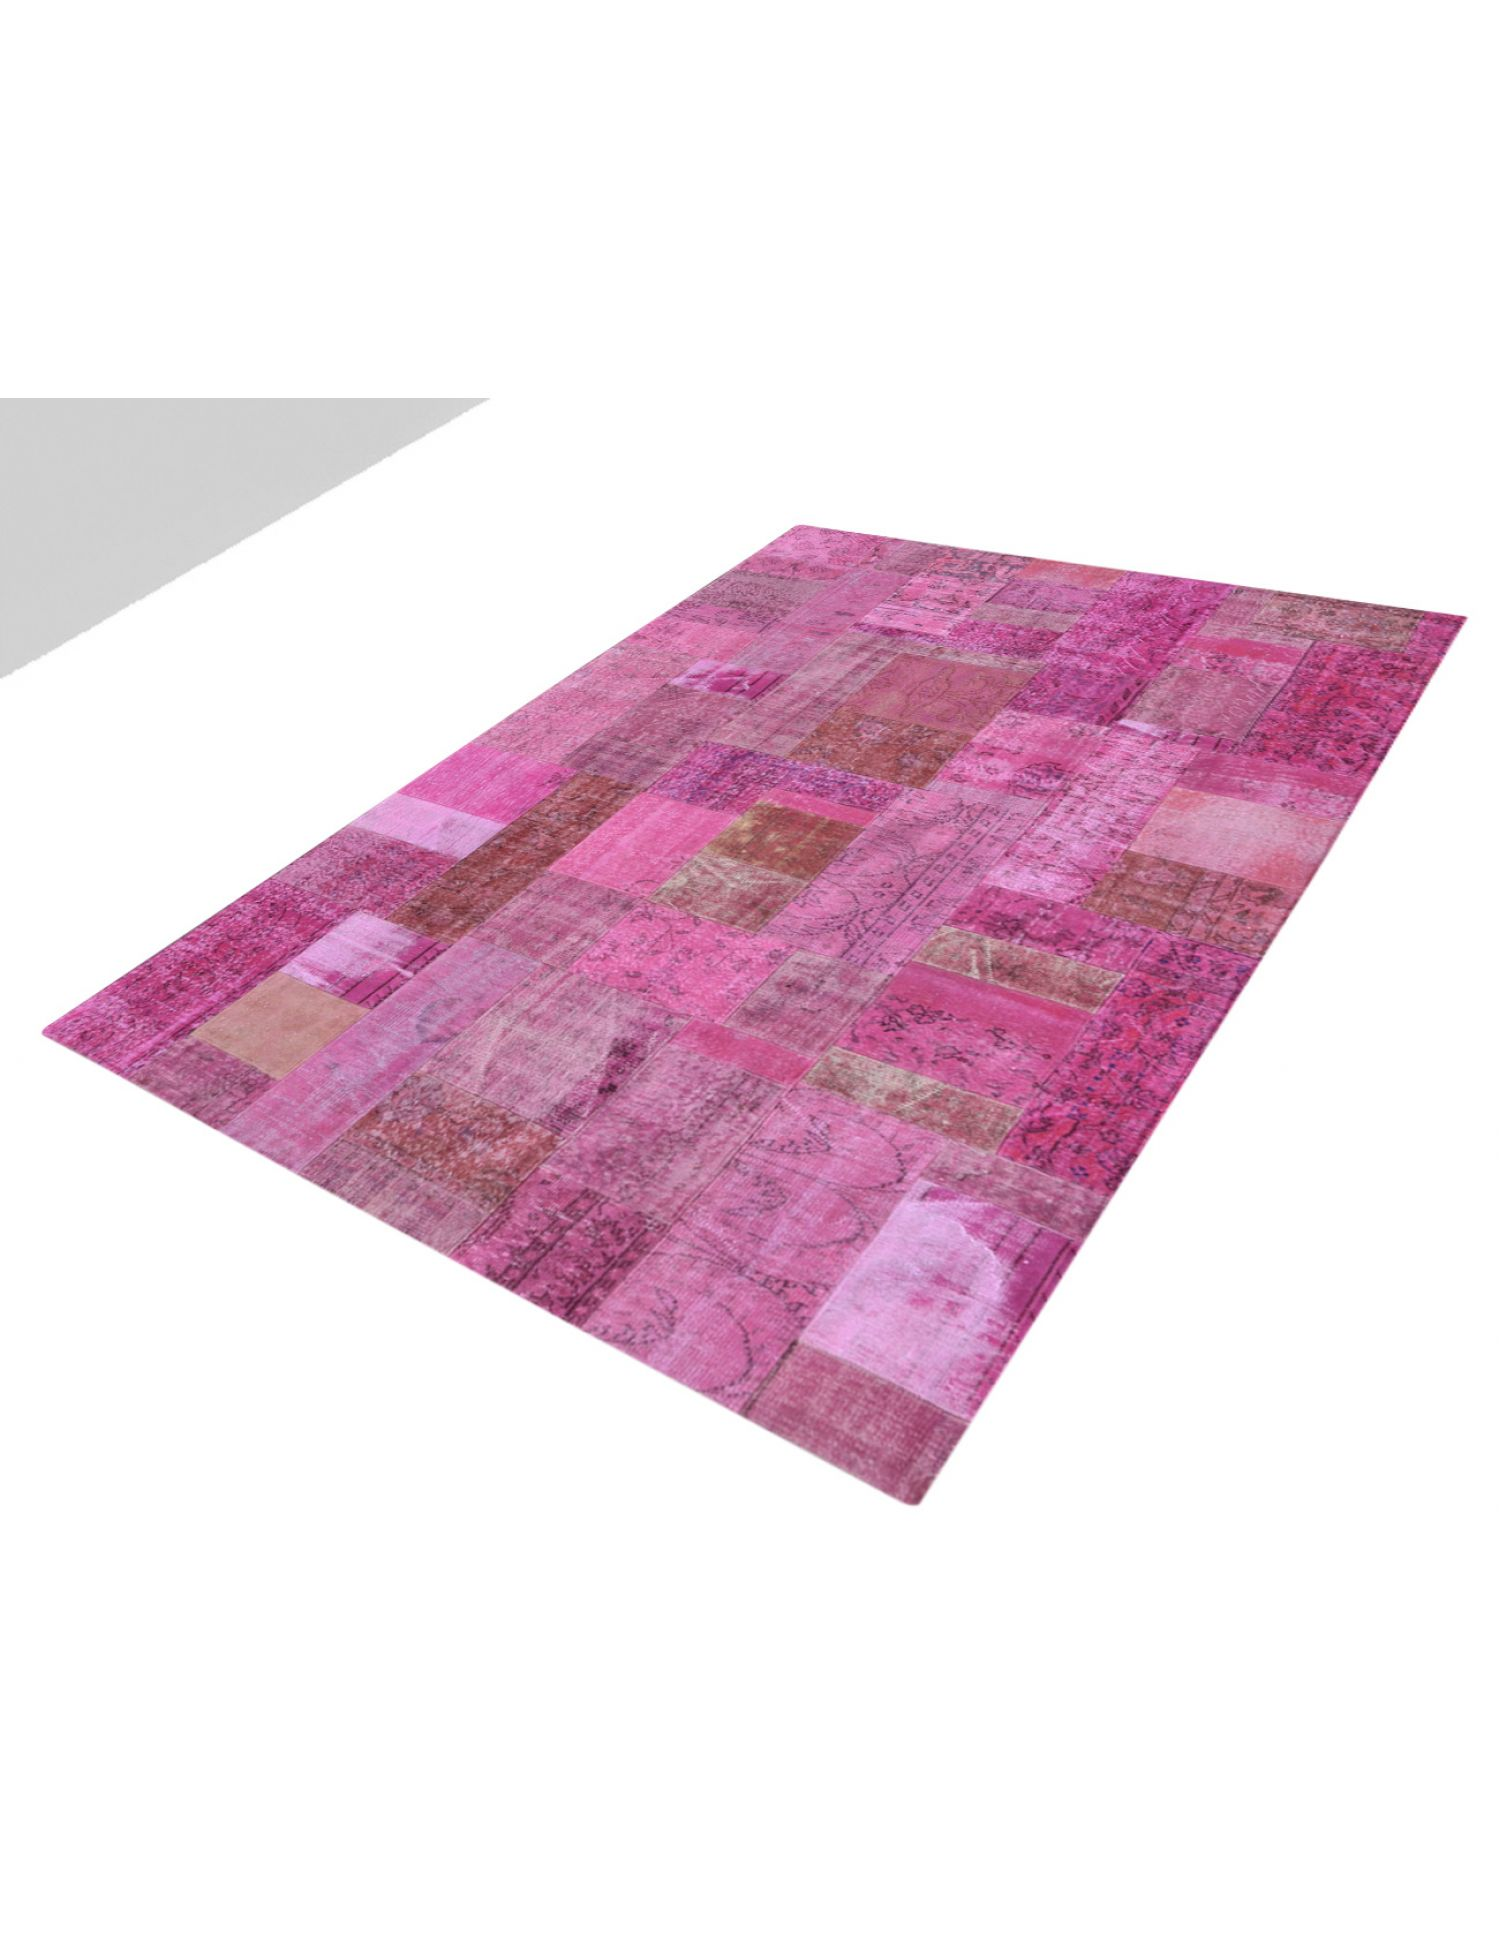 Patchwork Carpet   purple <br/>302 x 204 cm